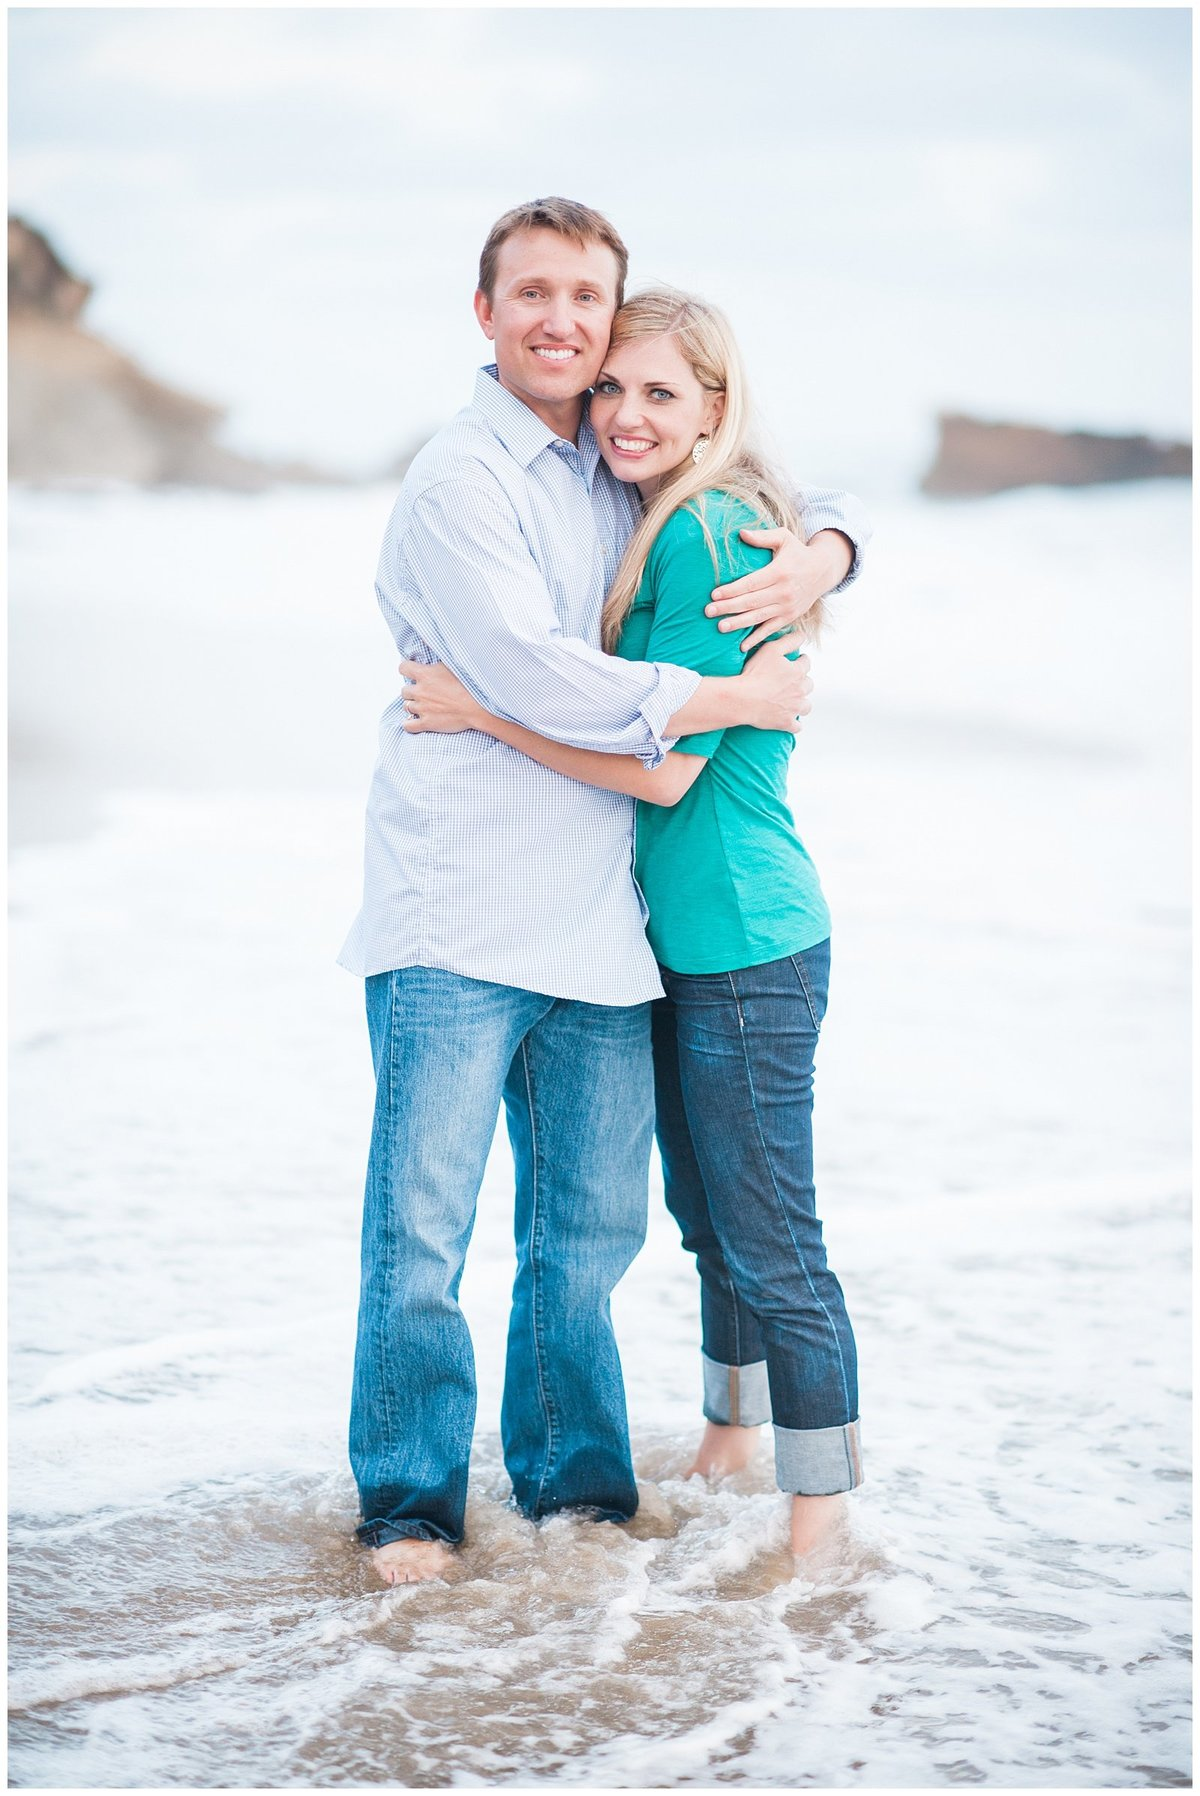 laguan beach heisler park engagment photographer photo011